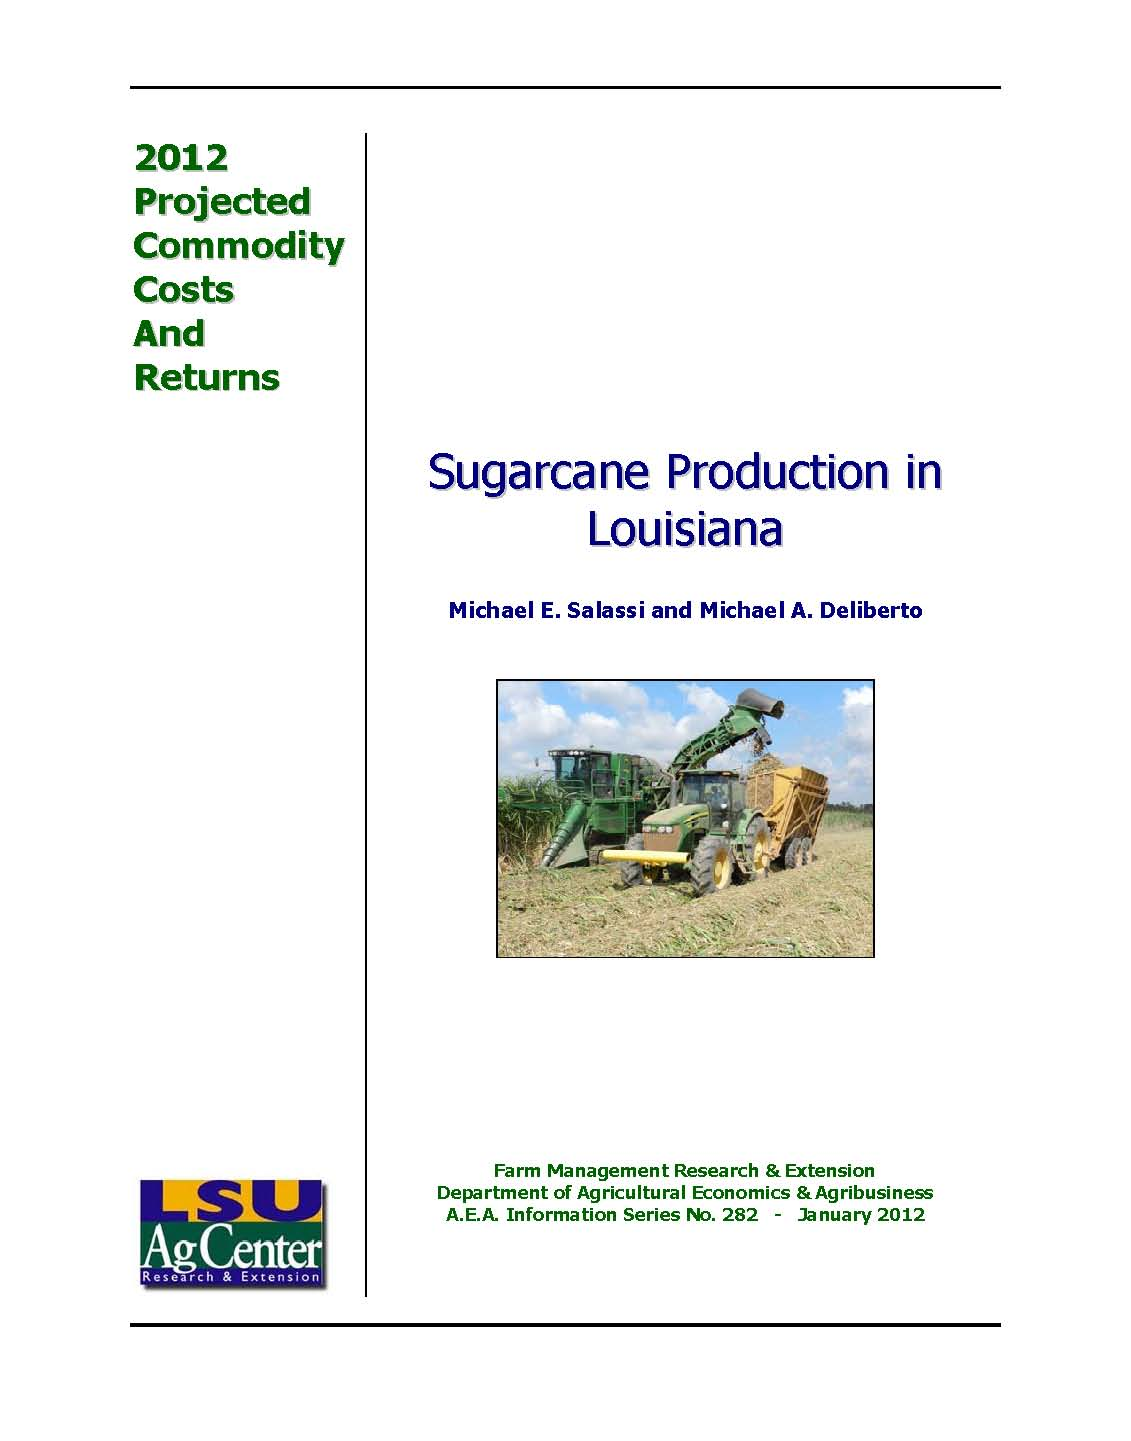 2012 Projected Louisiana Sugarcane Production Costs